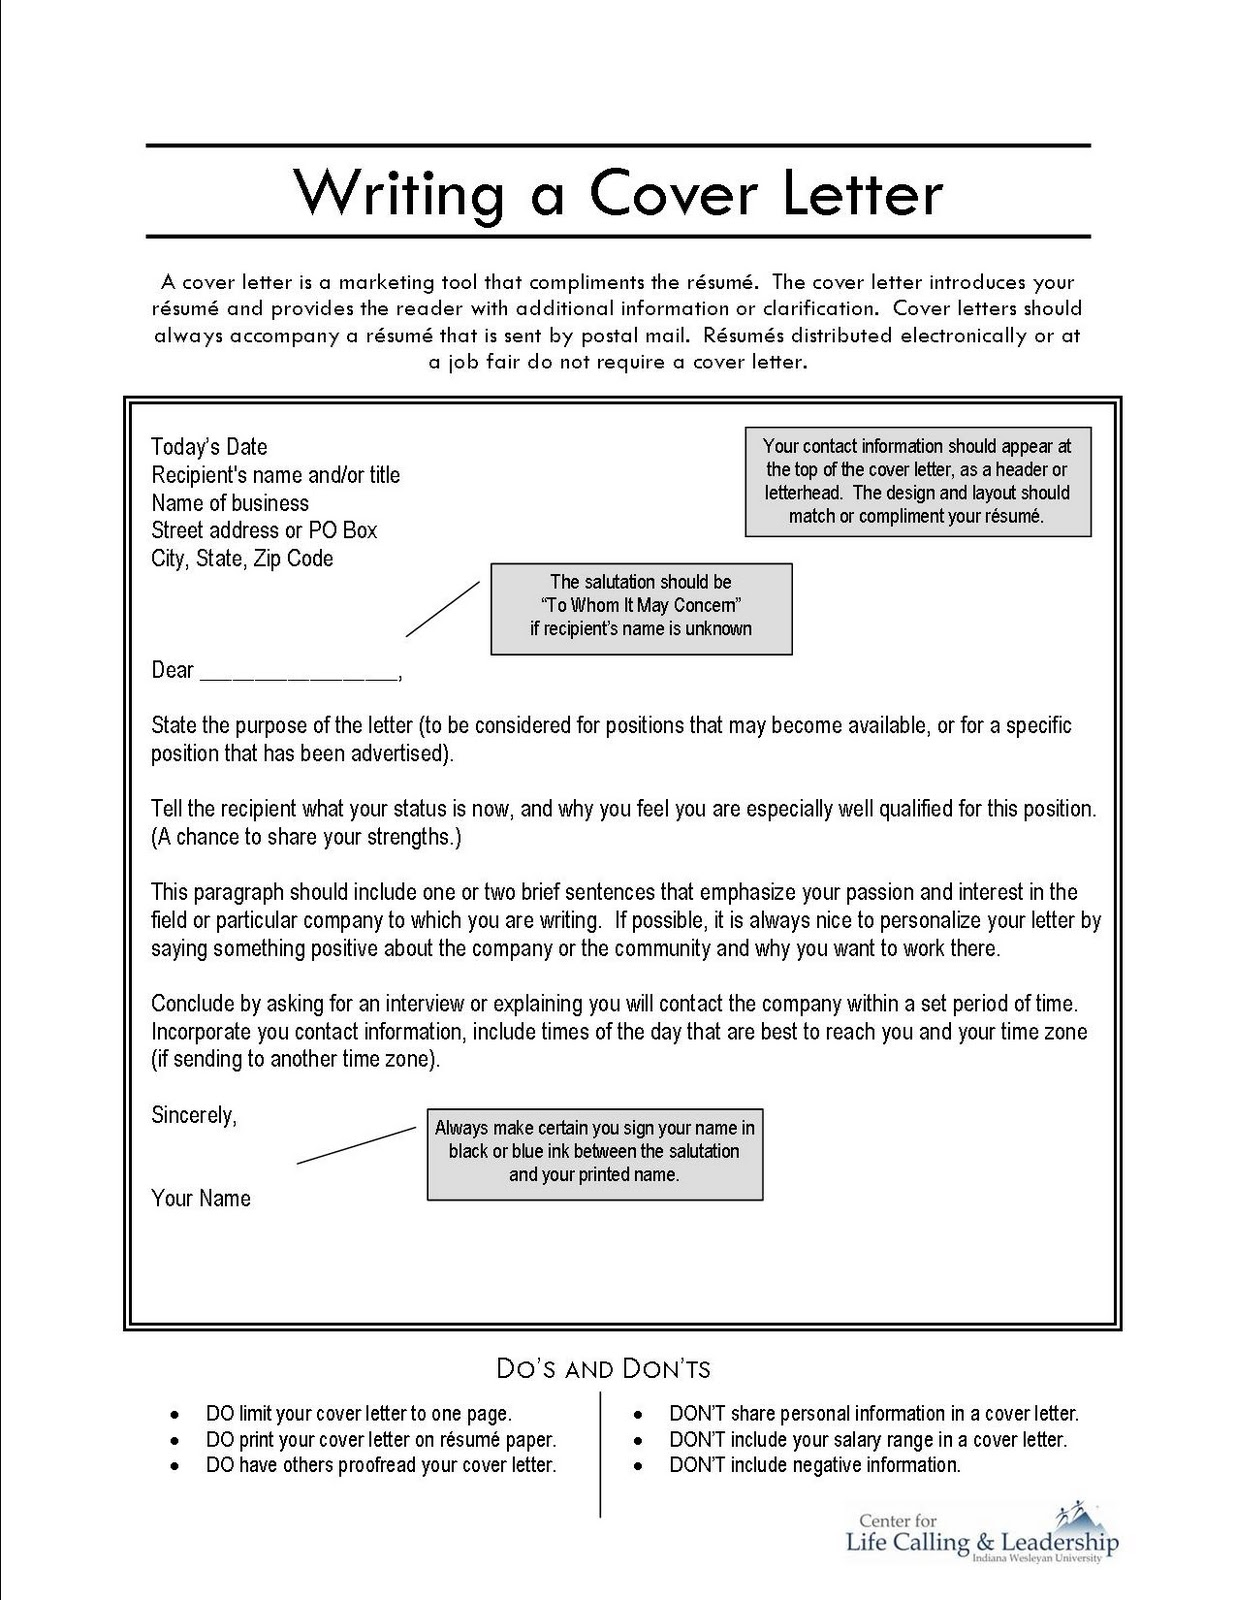 custom cover letter writing for hire for phd - Resumes And Cover Letters